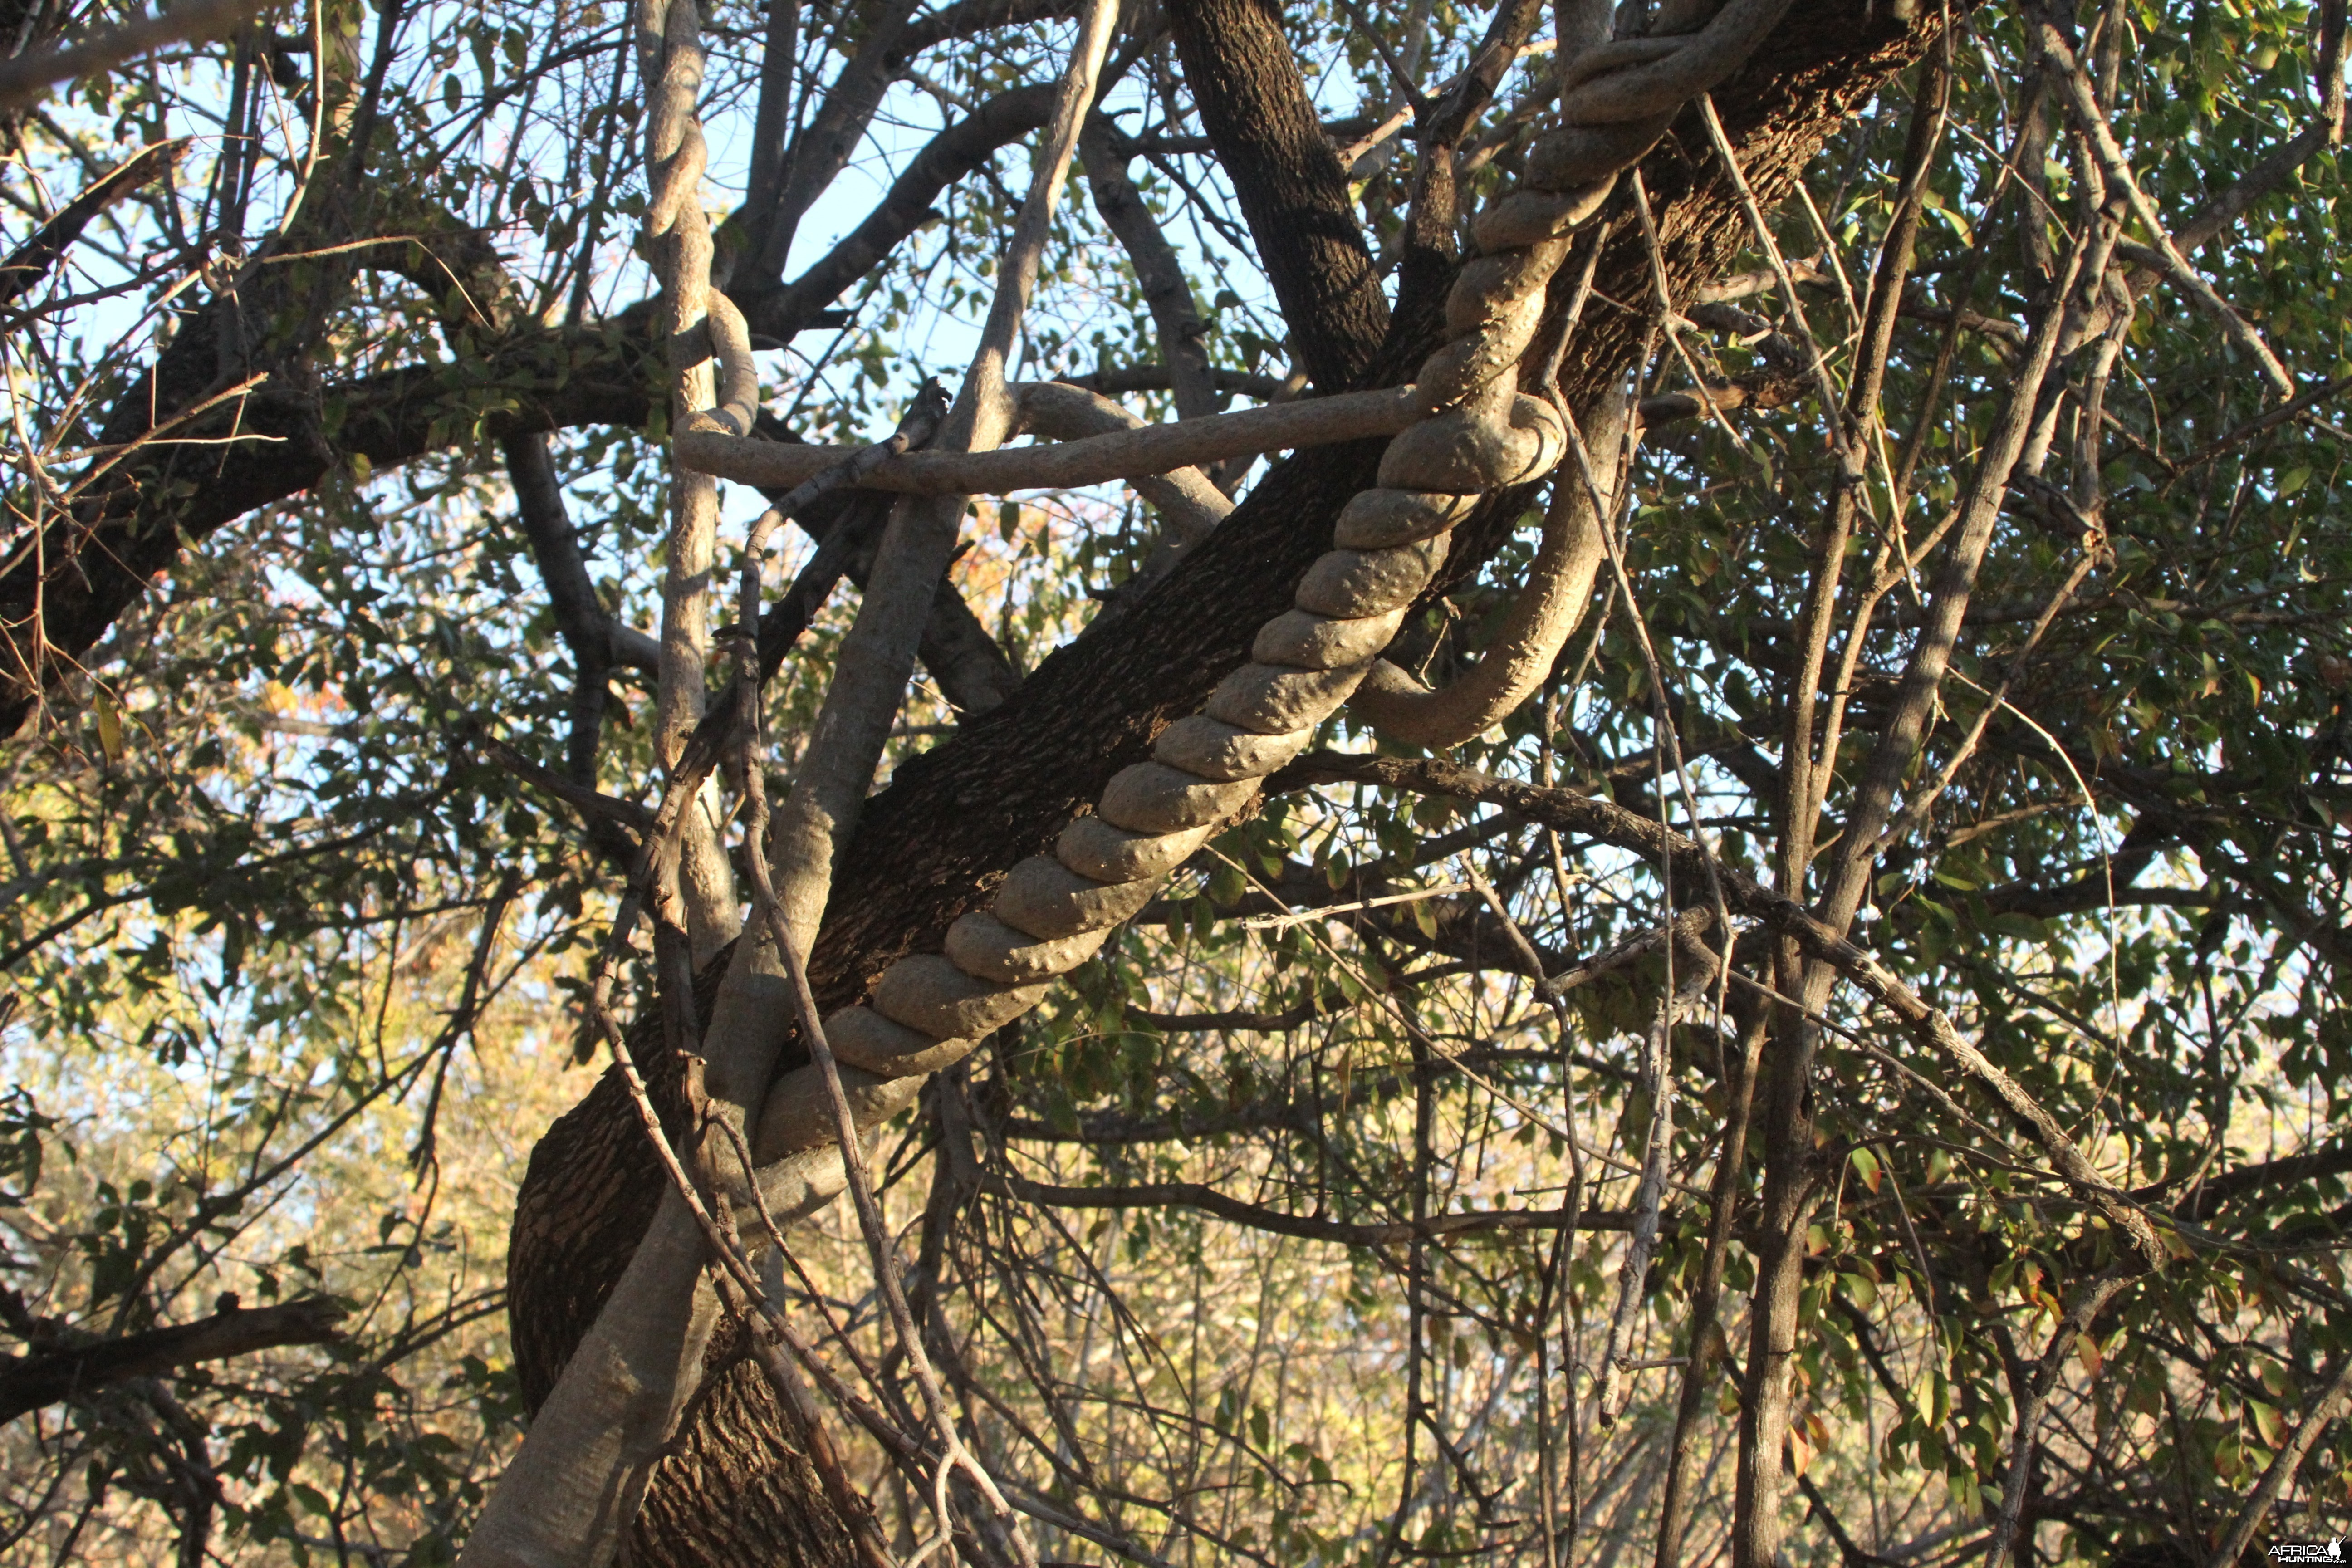 Tree at Otjikoto Lake in Namibia